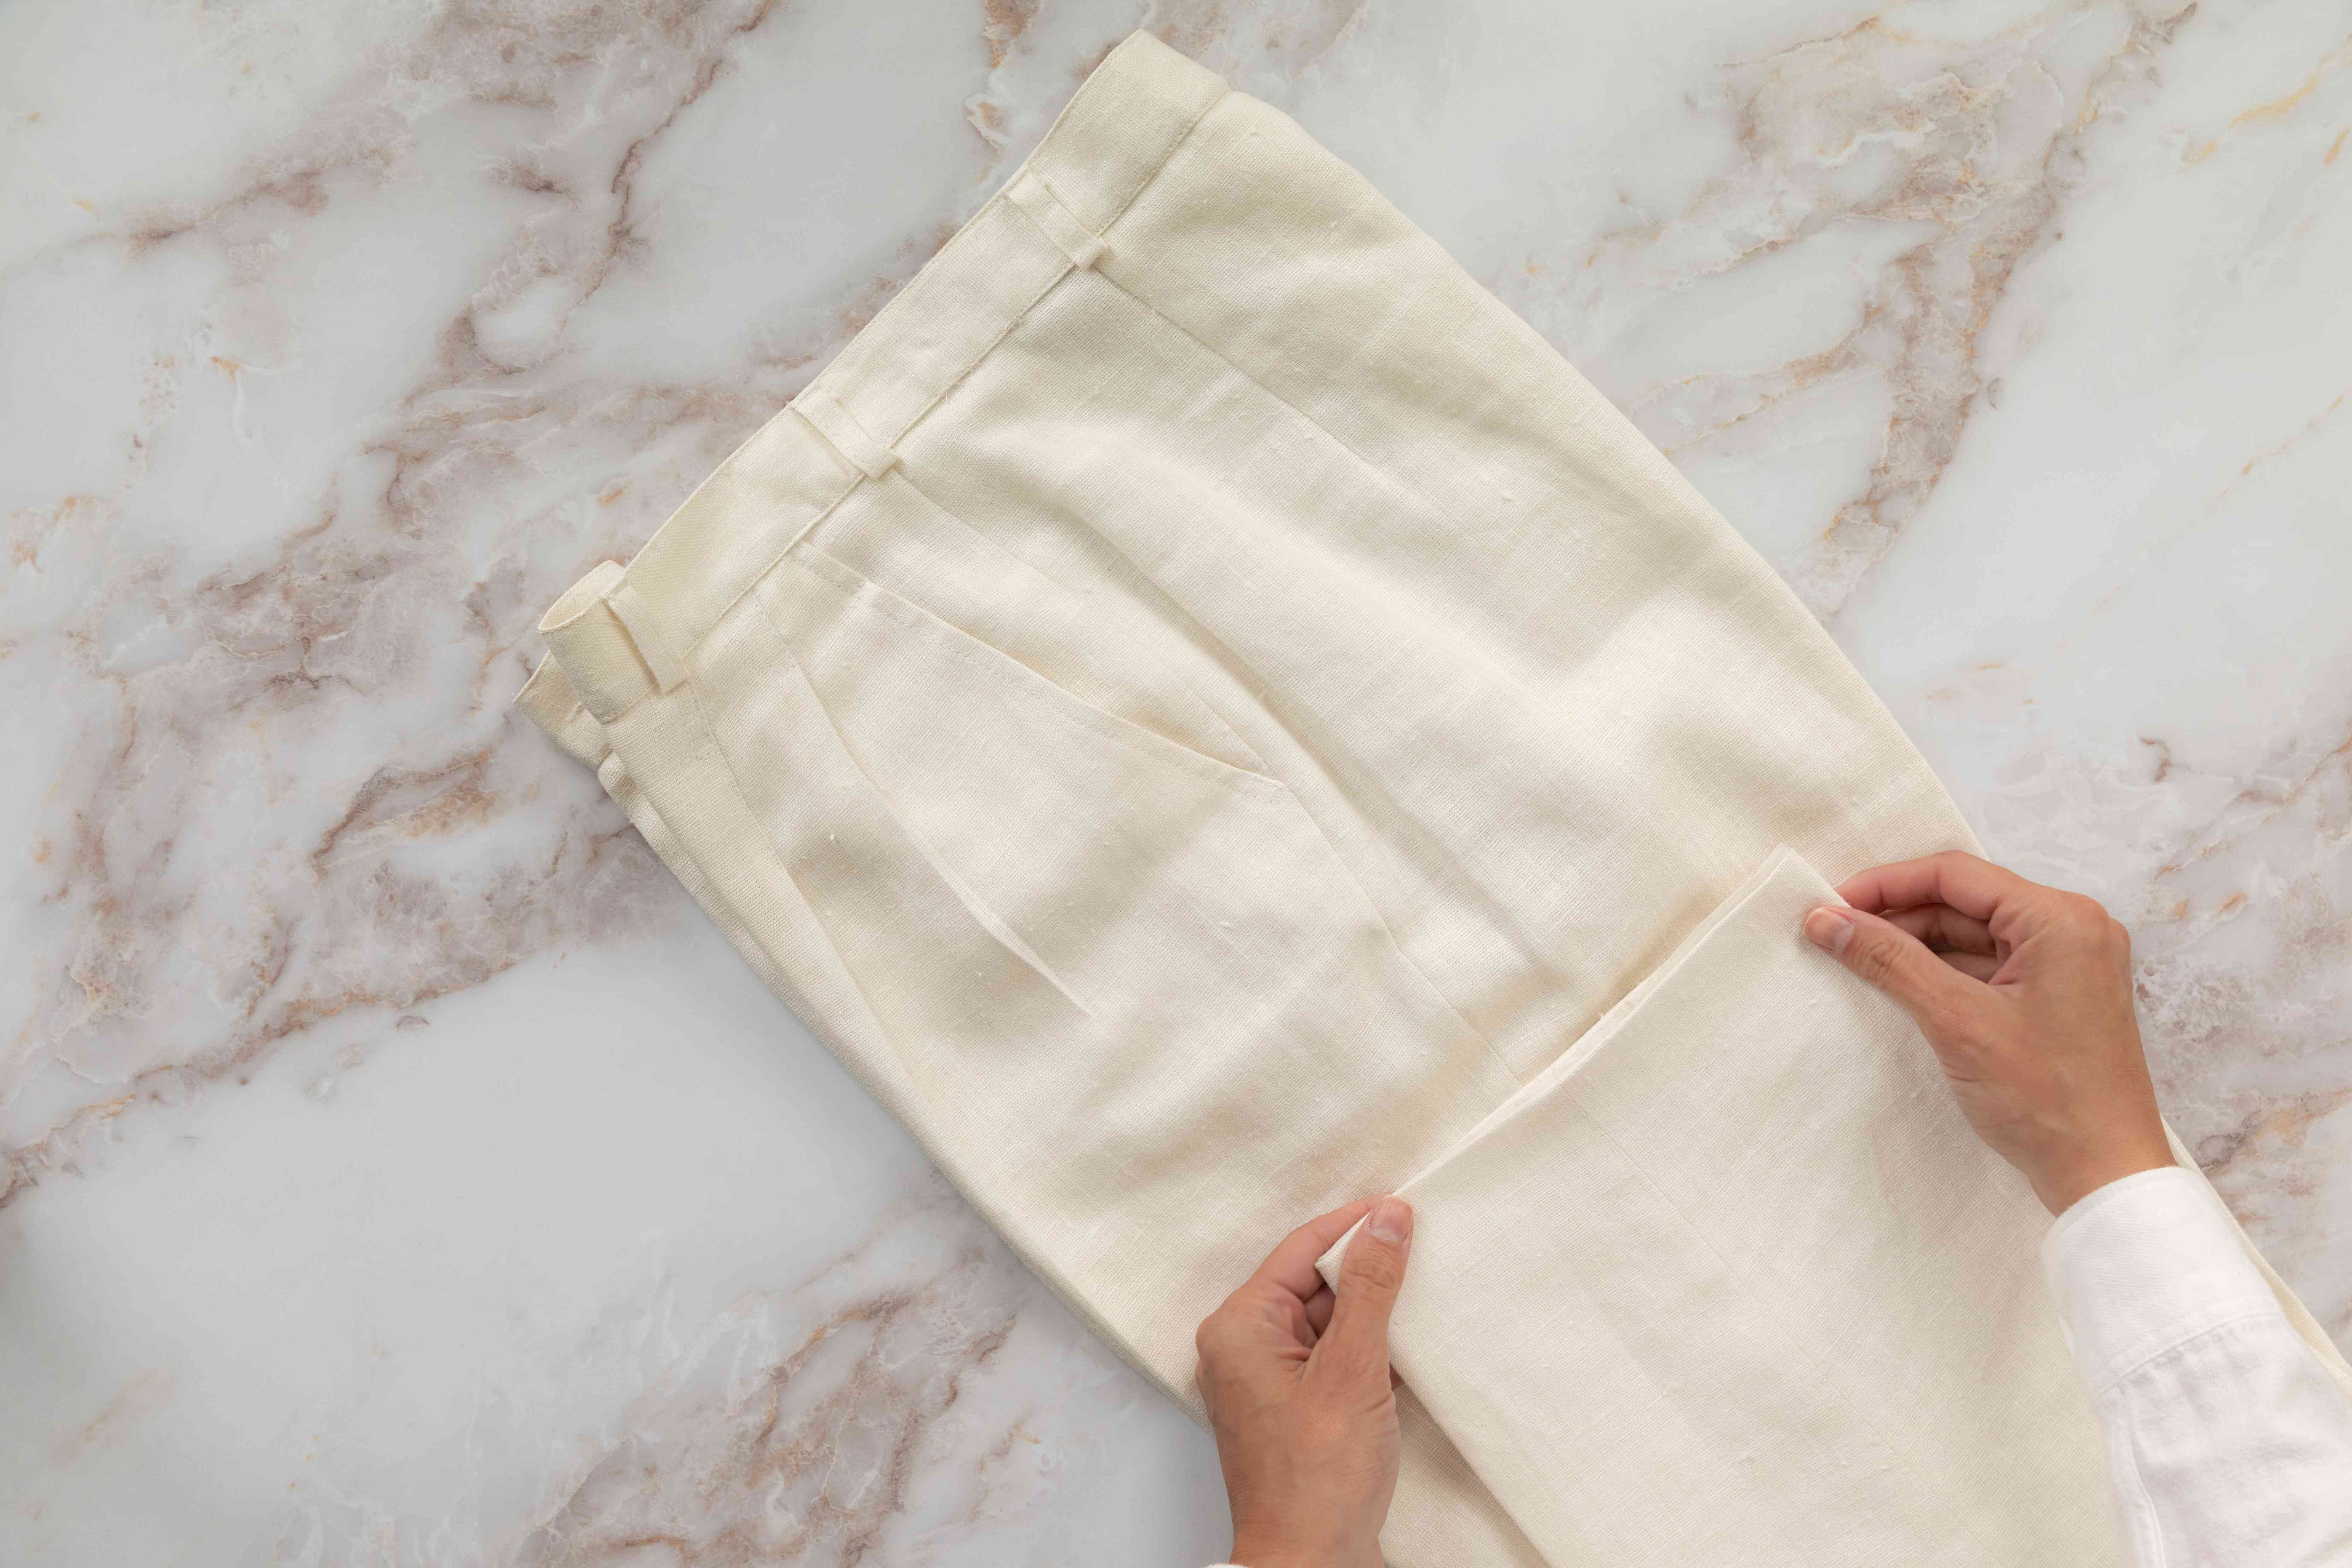 Cream-colored pants with creases folded in half with pant cuff folded up toward leg pant